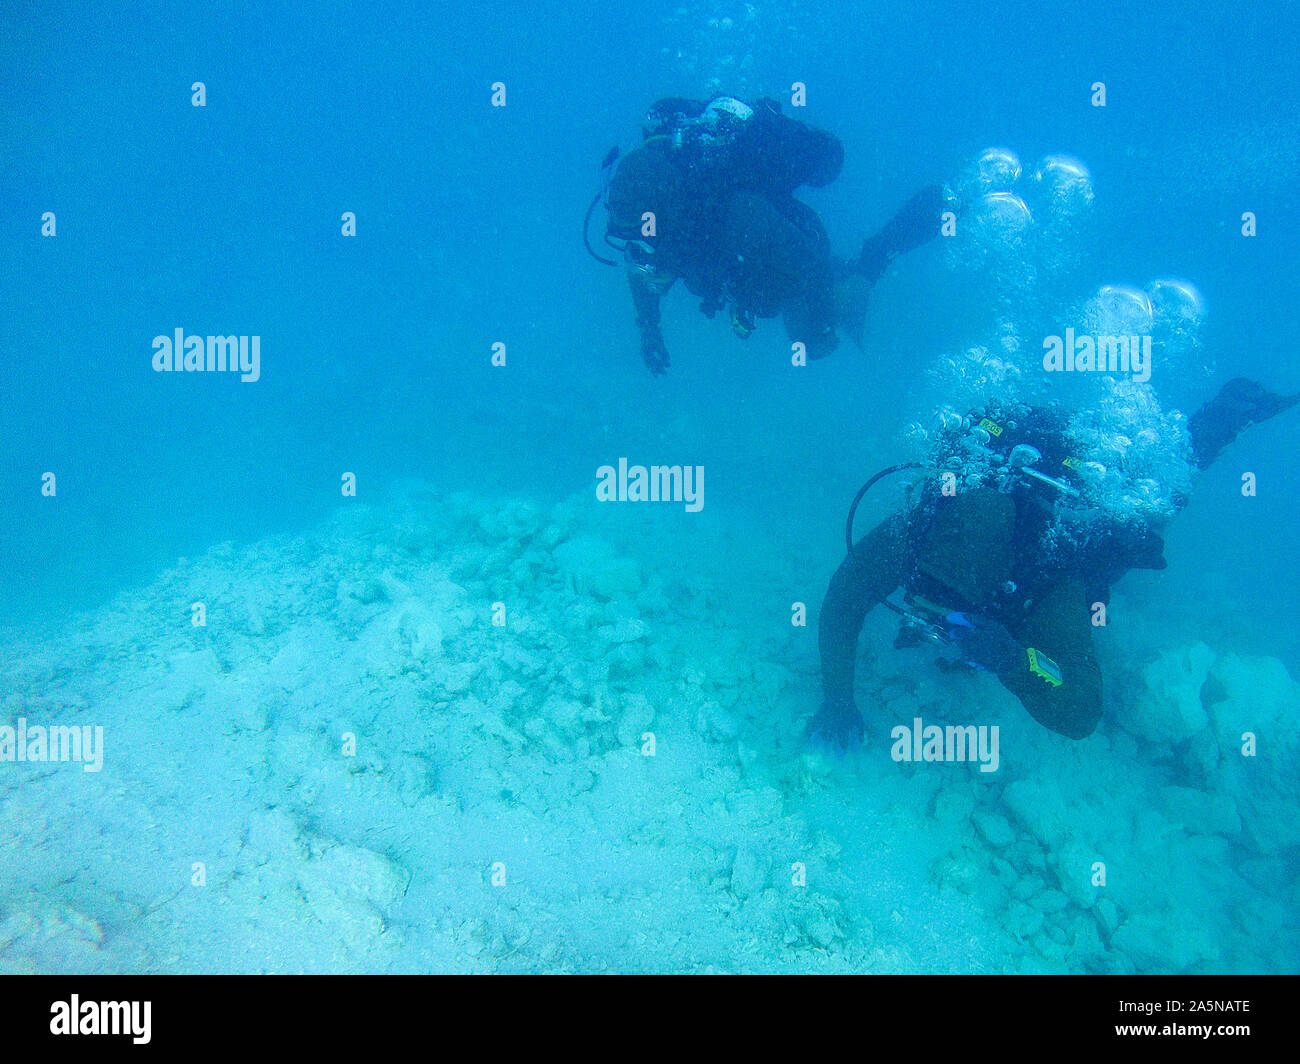 191020-N-SS432-0071  PACIFIC OCEAN (Oct. 20, 2019) Sailors assigned to Underwater Construction Team Two (UCT 2) Construction Dive Detachment /Bravo (CDD/B) survey the site on an obstruction in a channel at the Sapwauhfik Atoll in the Federated States of Micronesia on Oct. 20, 2019 in support of Triggerfish 2019. Triggerfish is a U.S. Third Fleet-led mission that employs expeditionary forces to conduct hydrographic surveys and clear hazards to navigation in the Federated States of Micronesia in order to ensure a free and open Indo-Pacific. (U.S. Navy photo by Mass Communication Specialist 2nd C Stock Photo